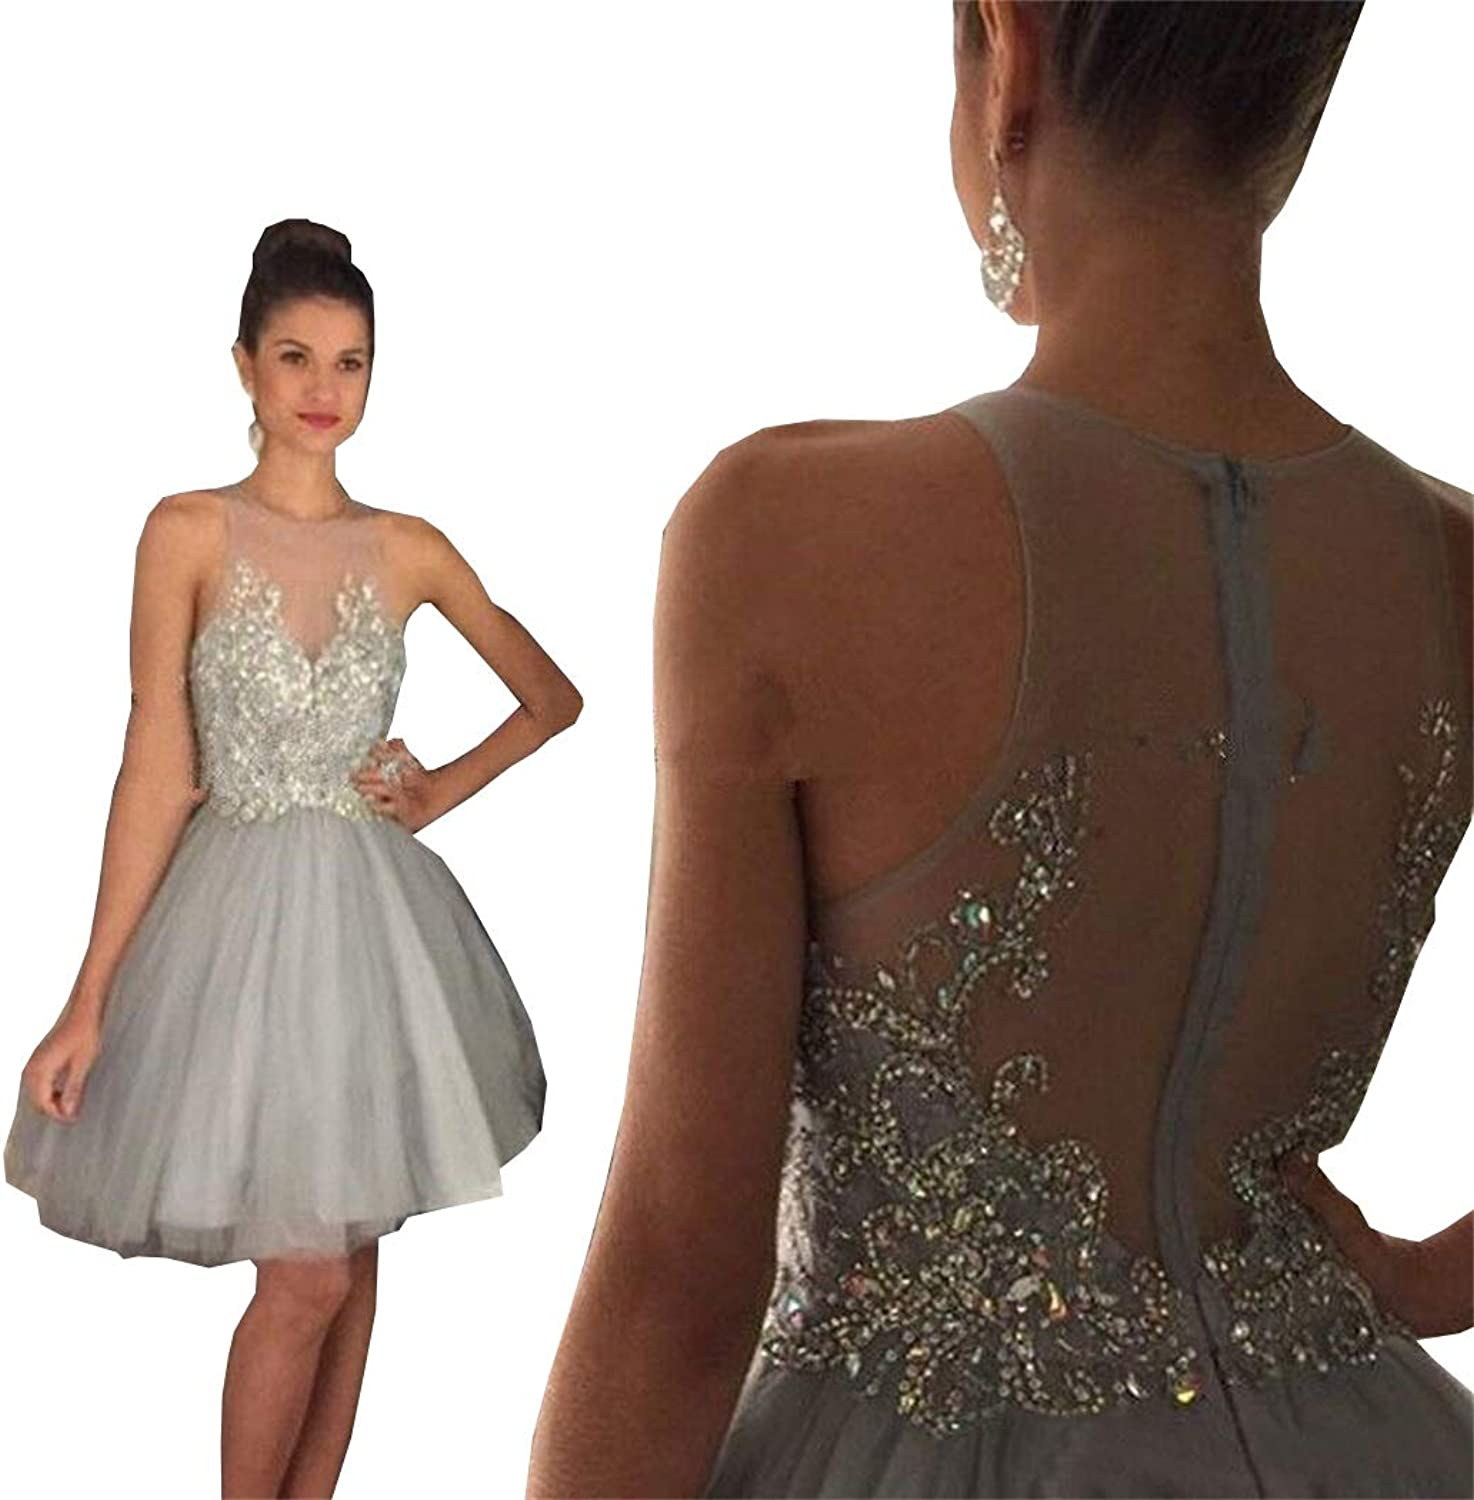 Ellystar Jewel Neck Short Homecoming Dresses Beaded Crystal Graduation Dresses